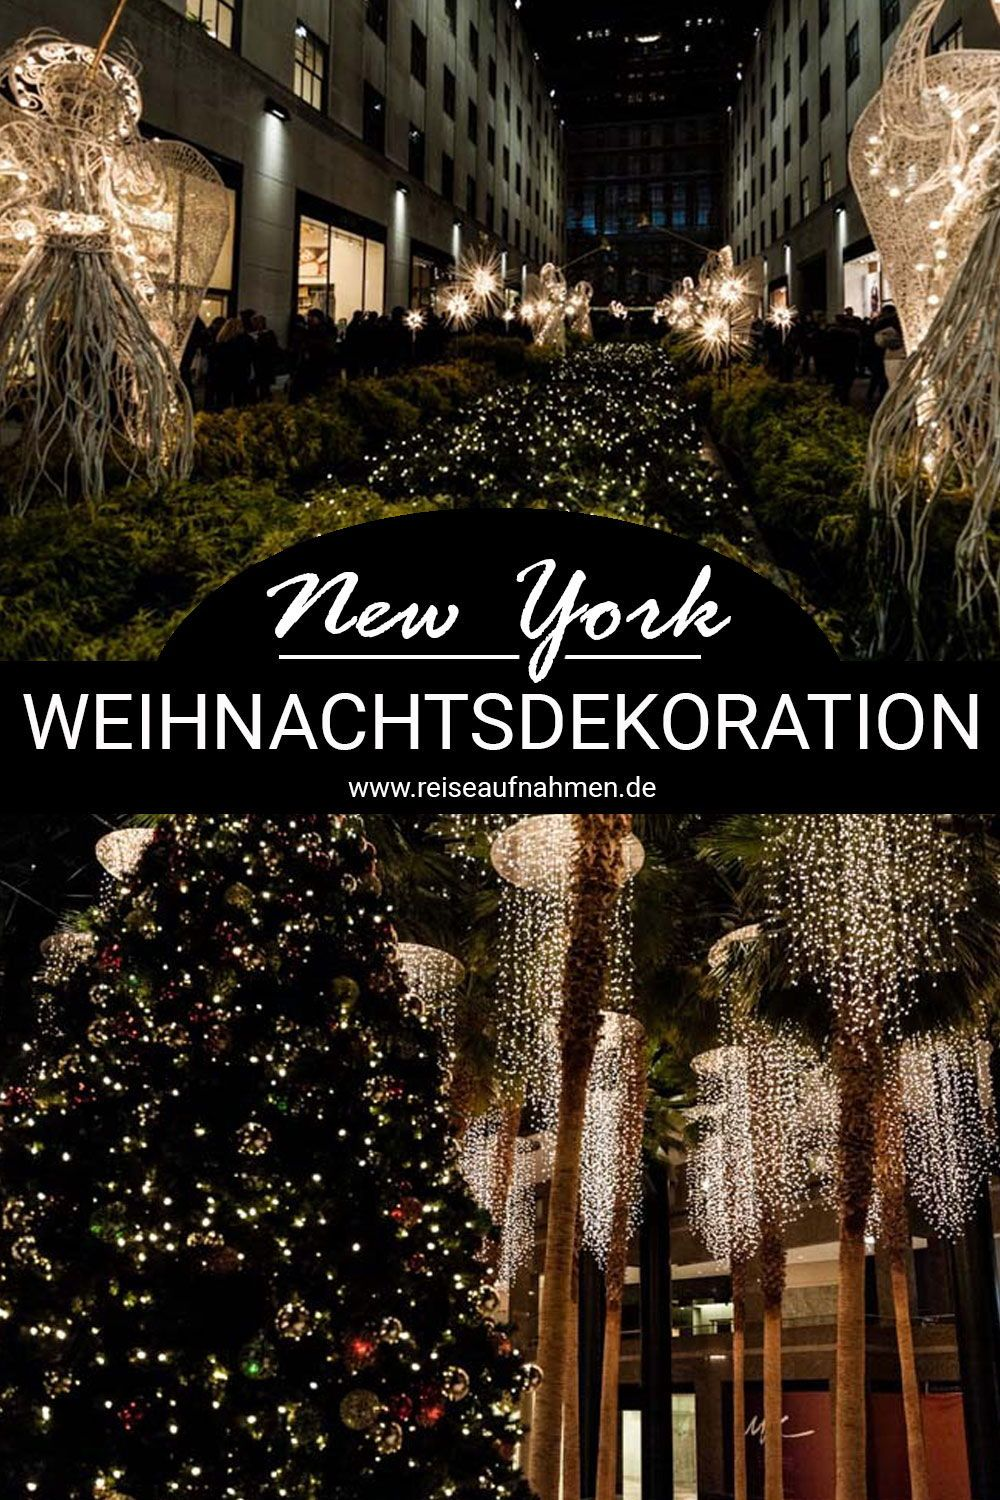 new york an weihnachten bedeutet lichterglanz berall. Black Bedroom Furniture Sets. Home Design Ideas